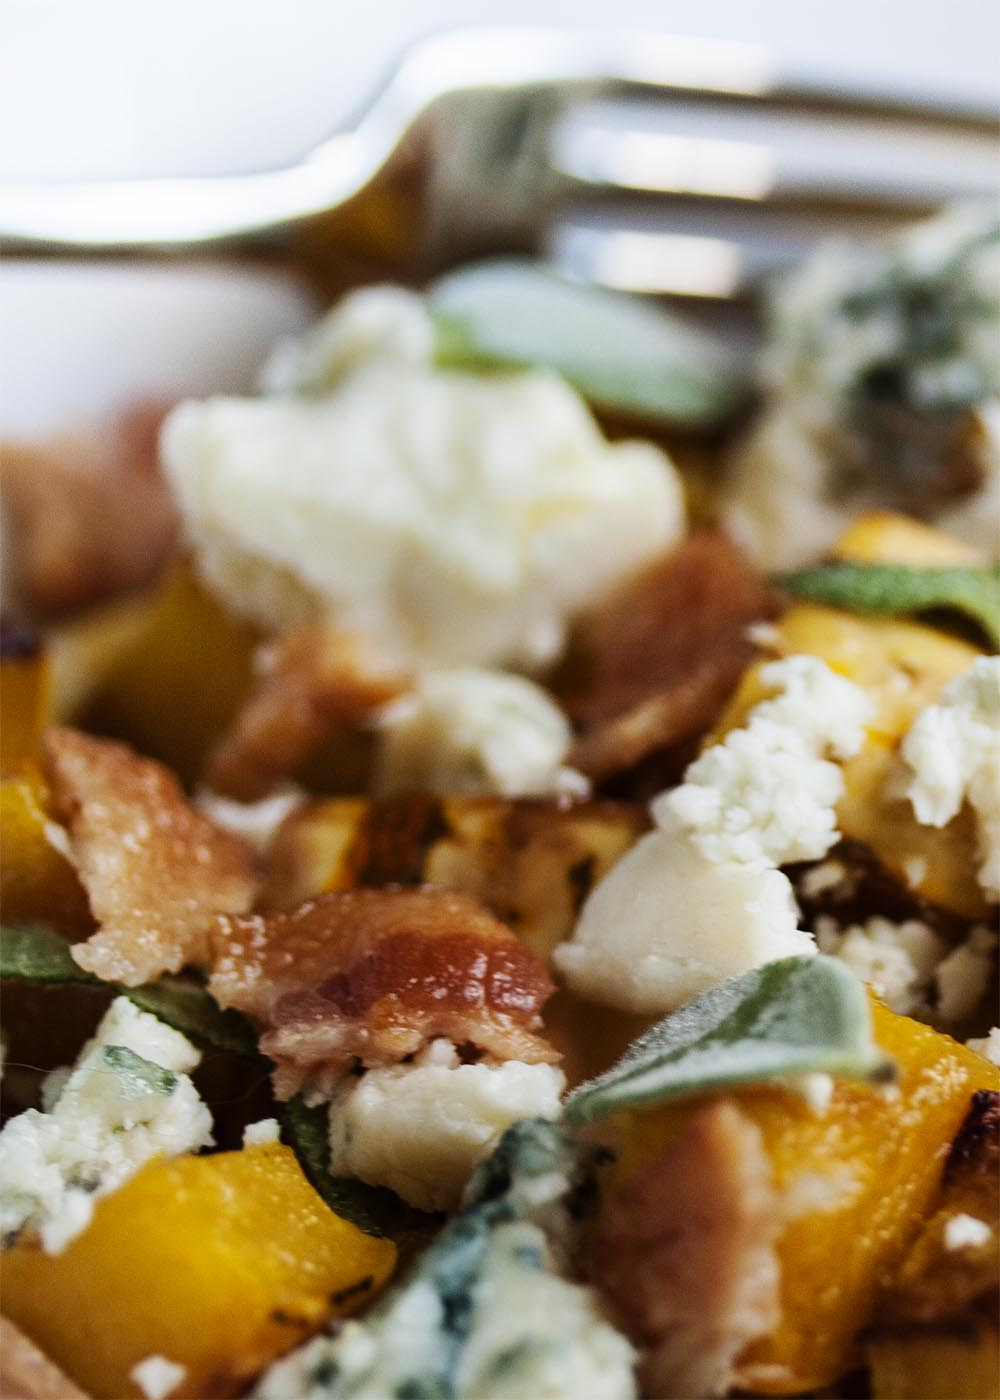 Delicata Squash With Bacon and Blue Cheese - Delicata squash is roasted and then tossed with bacon, blue cheese, and sage. I love it as a fall or Thanksgiving side dish.   justalittlebitofbacon.com